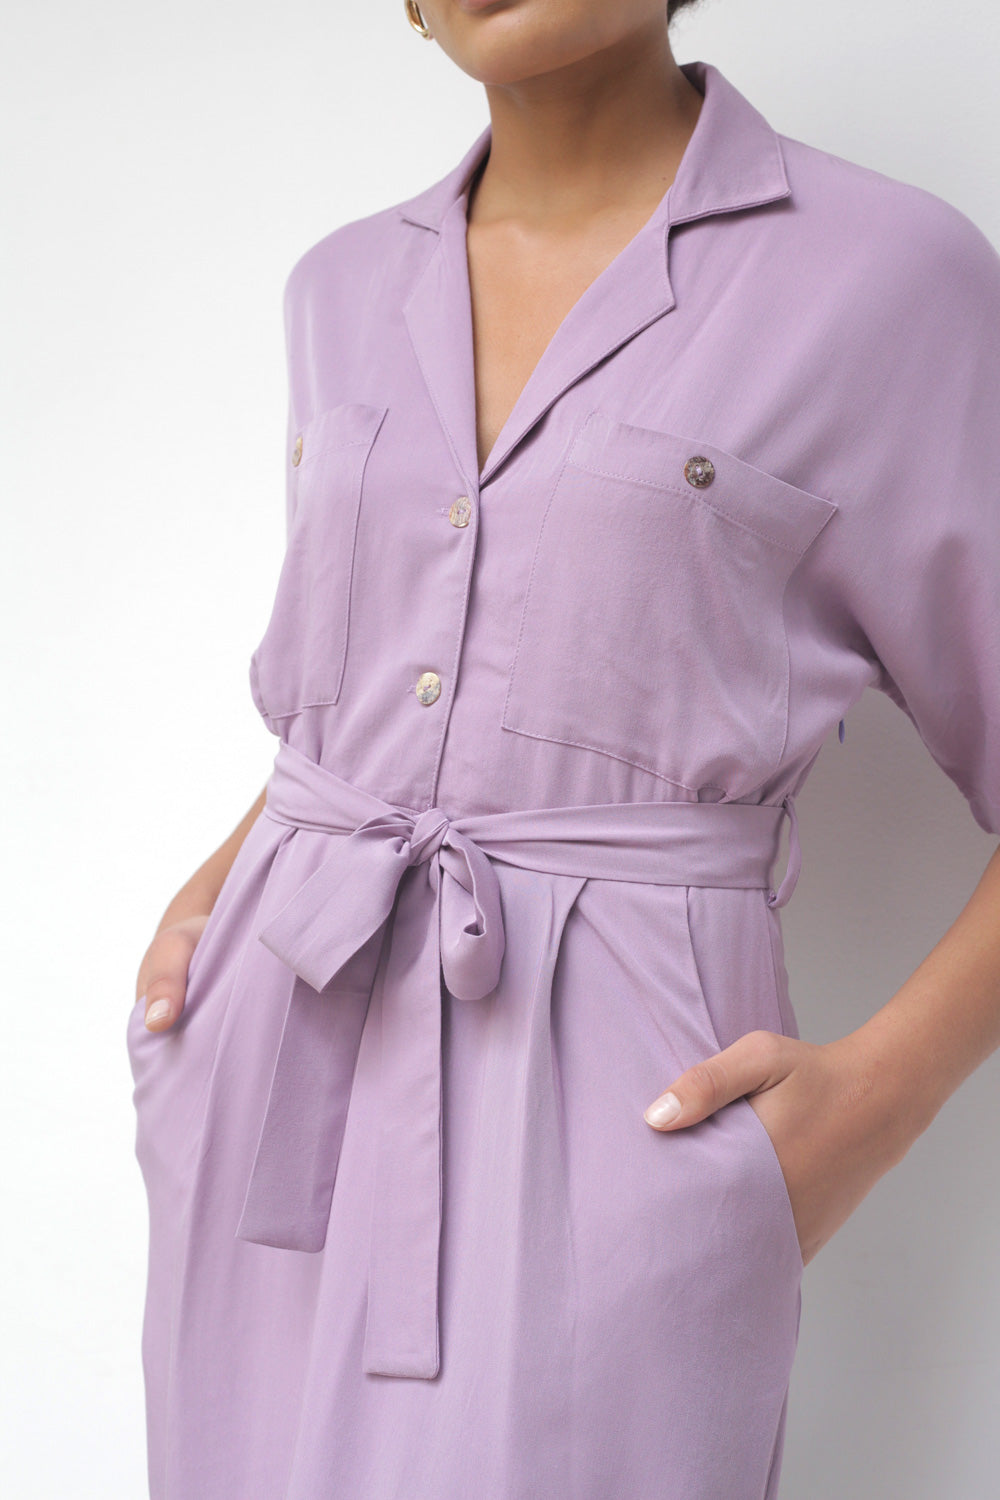 Off Duty Pocket Dress In Orchid Rayon Twill